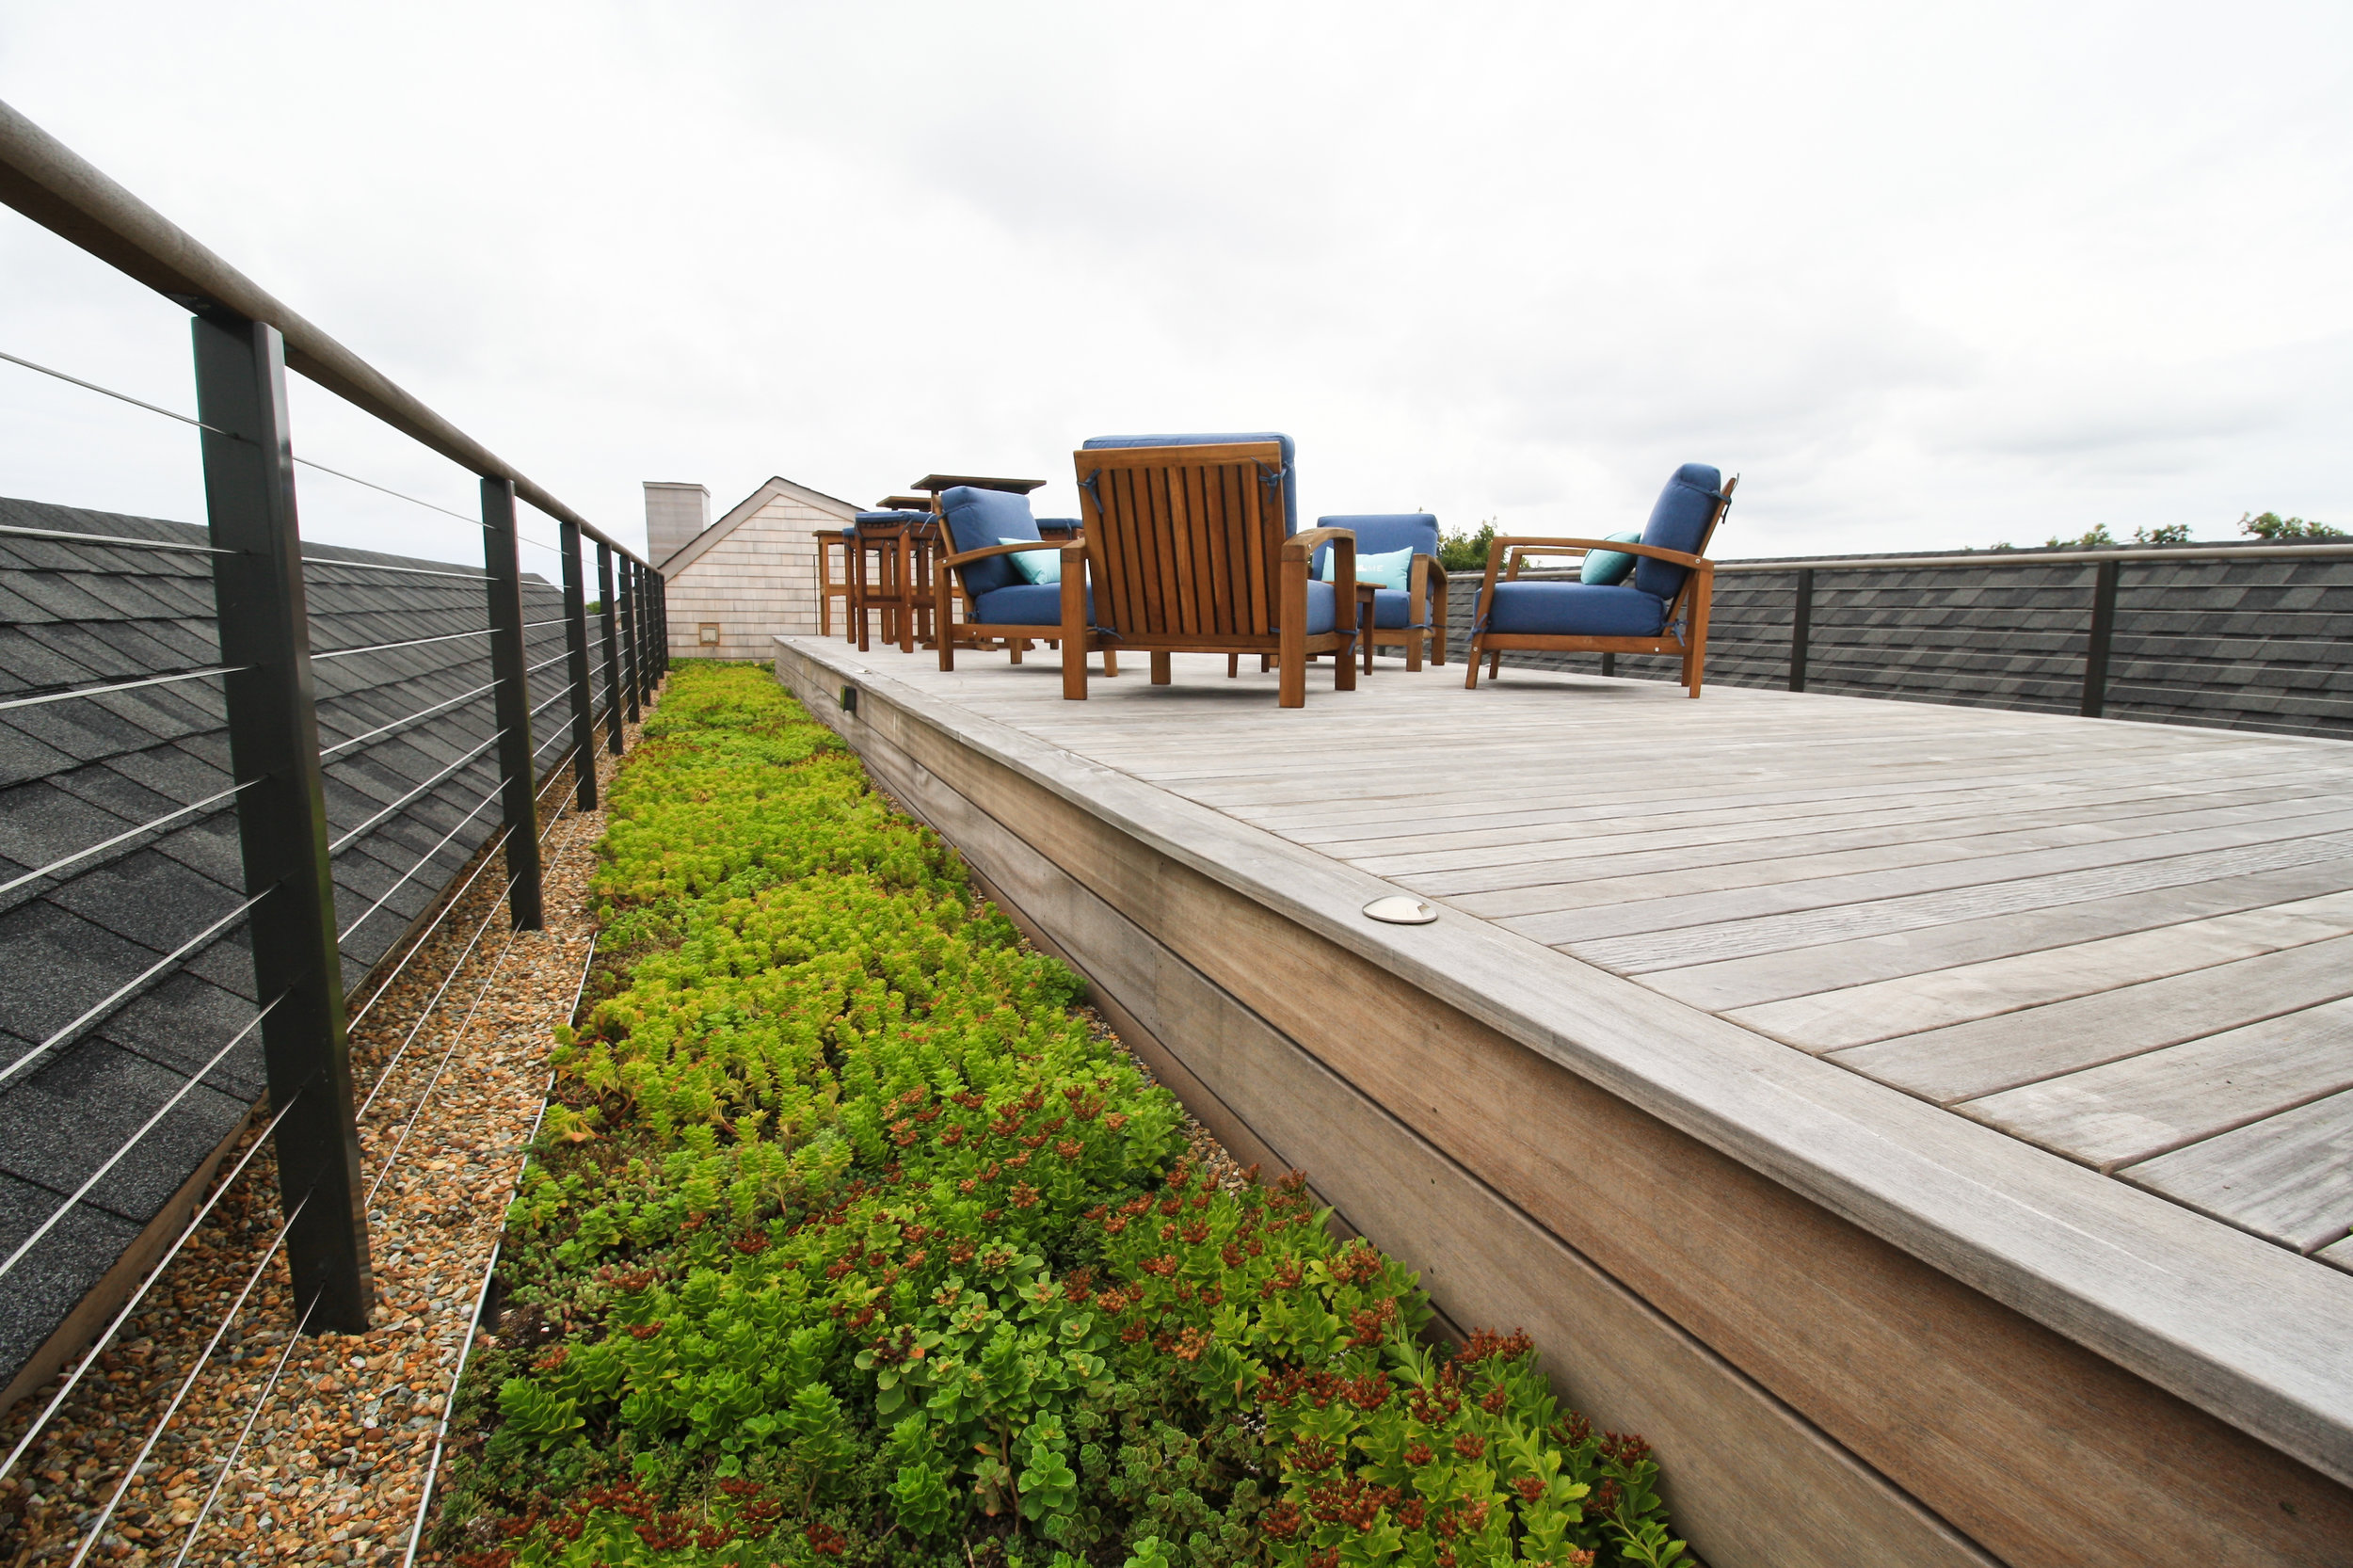 Recover-Green-Roofs-Residential-Green-Roof-Marthas-Vineyard-1